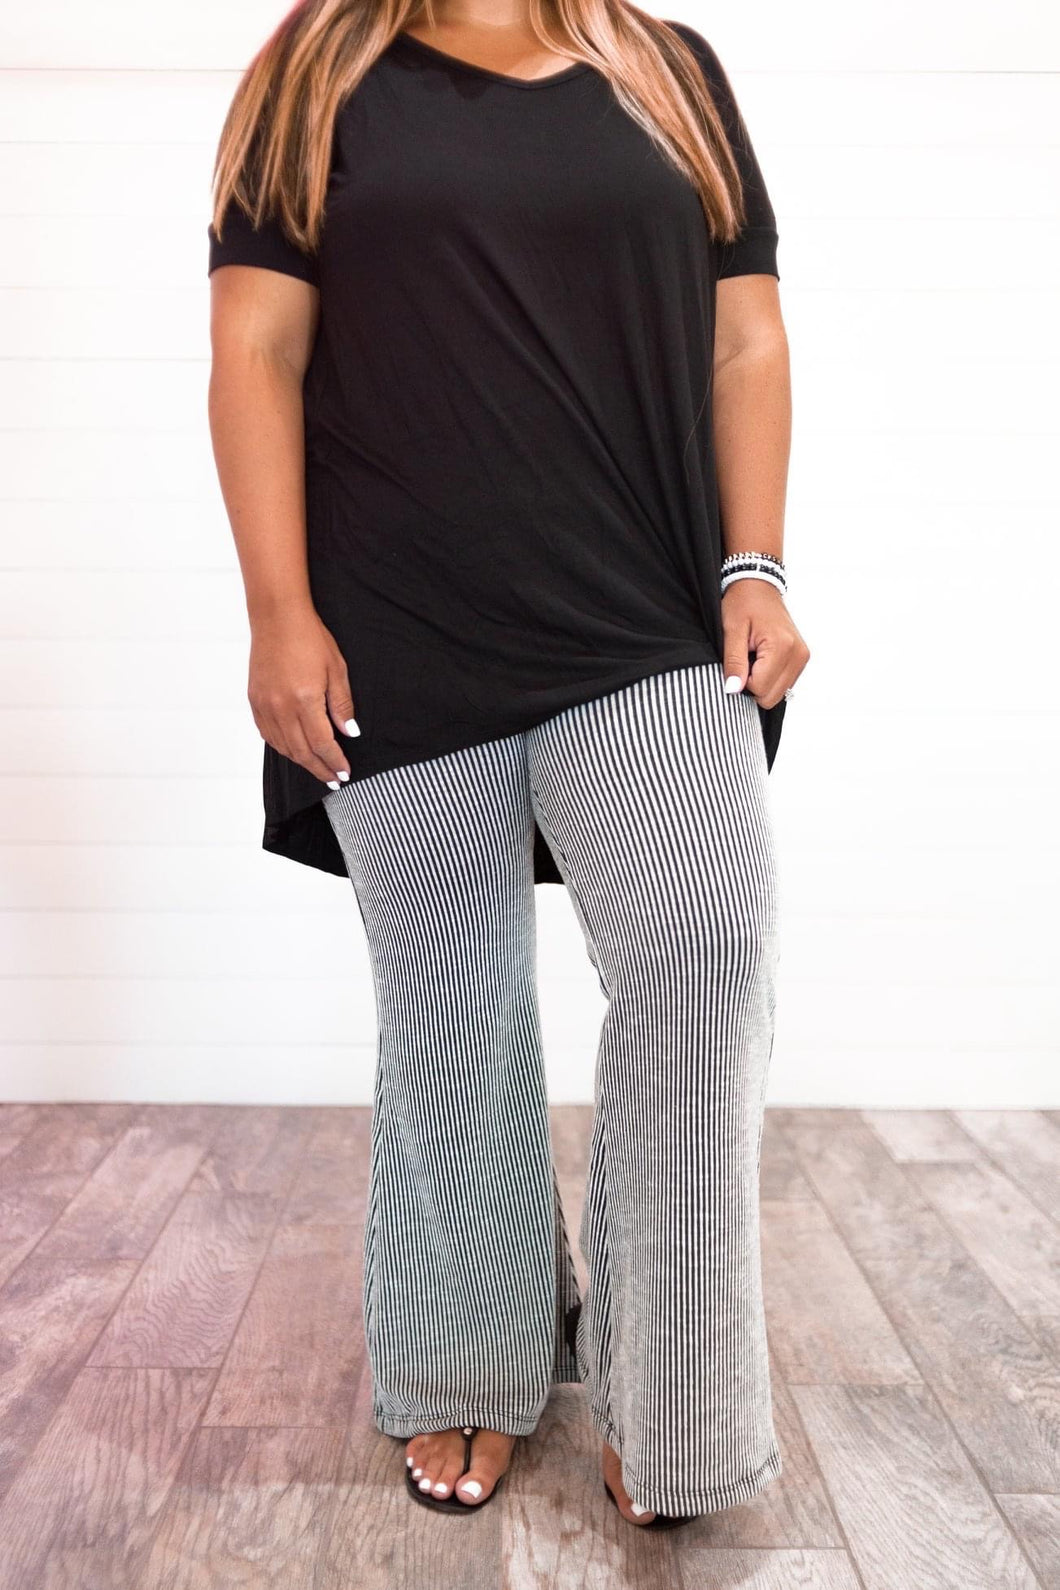 Striped Dreams Bell Bottoms - Curvy